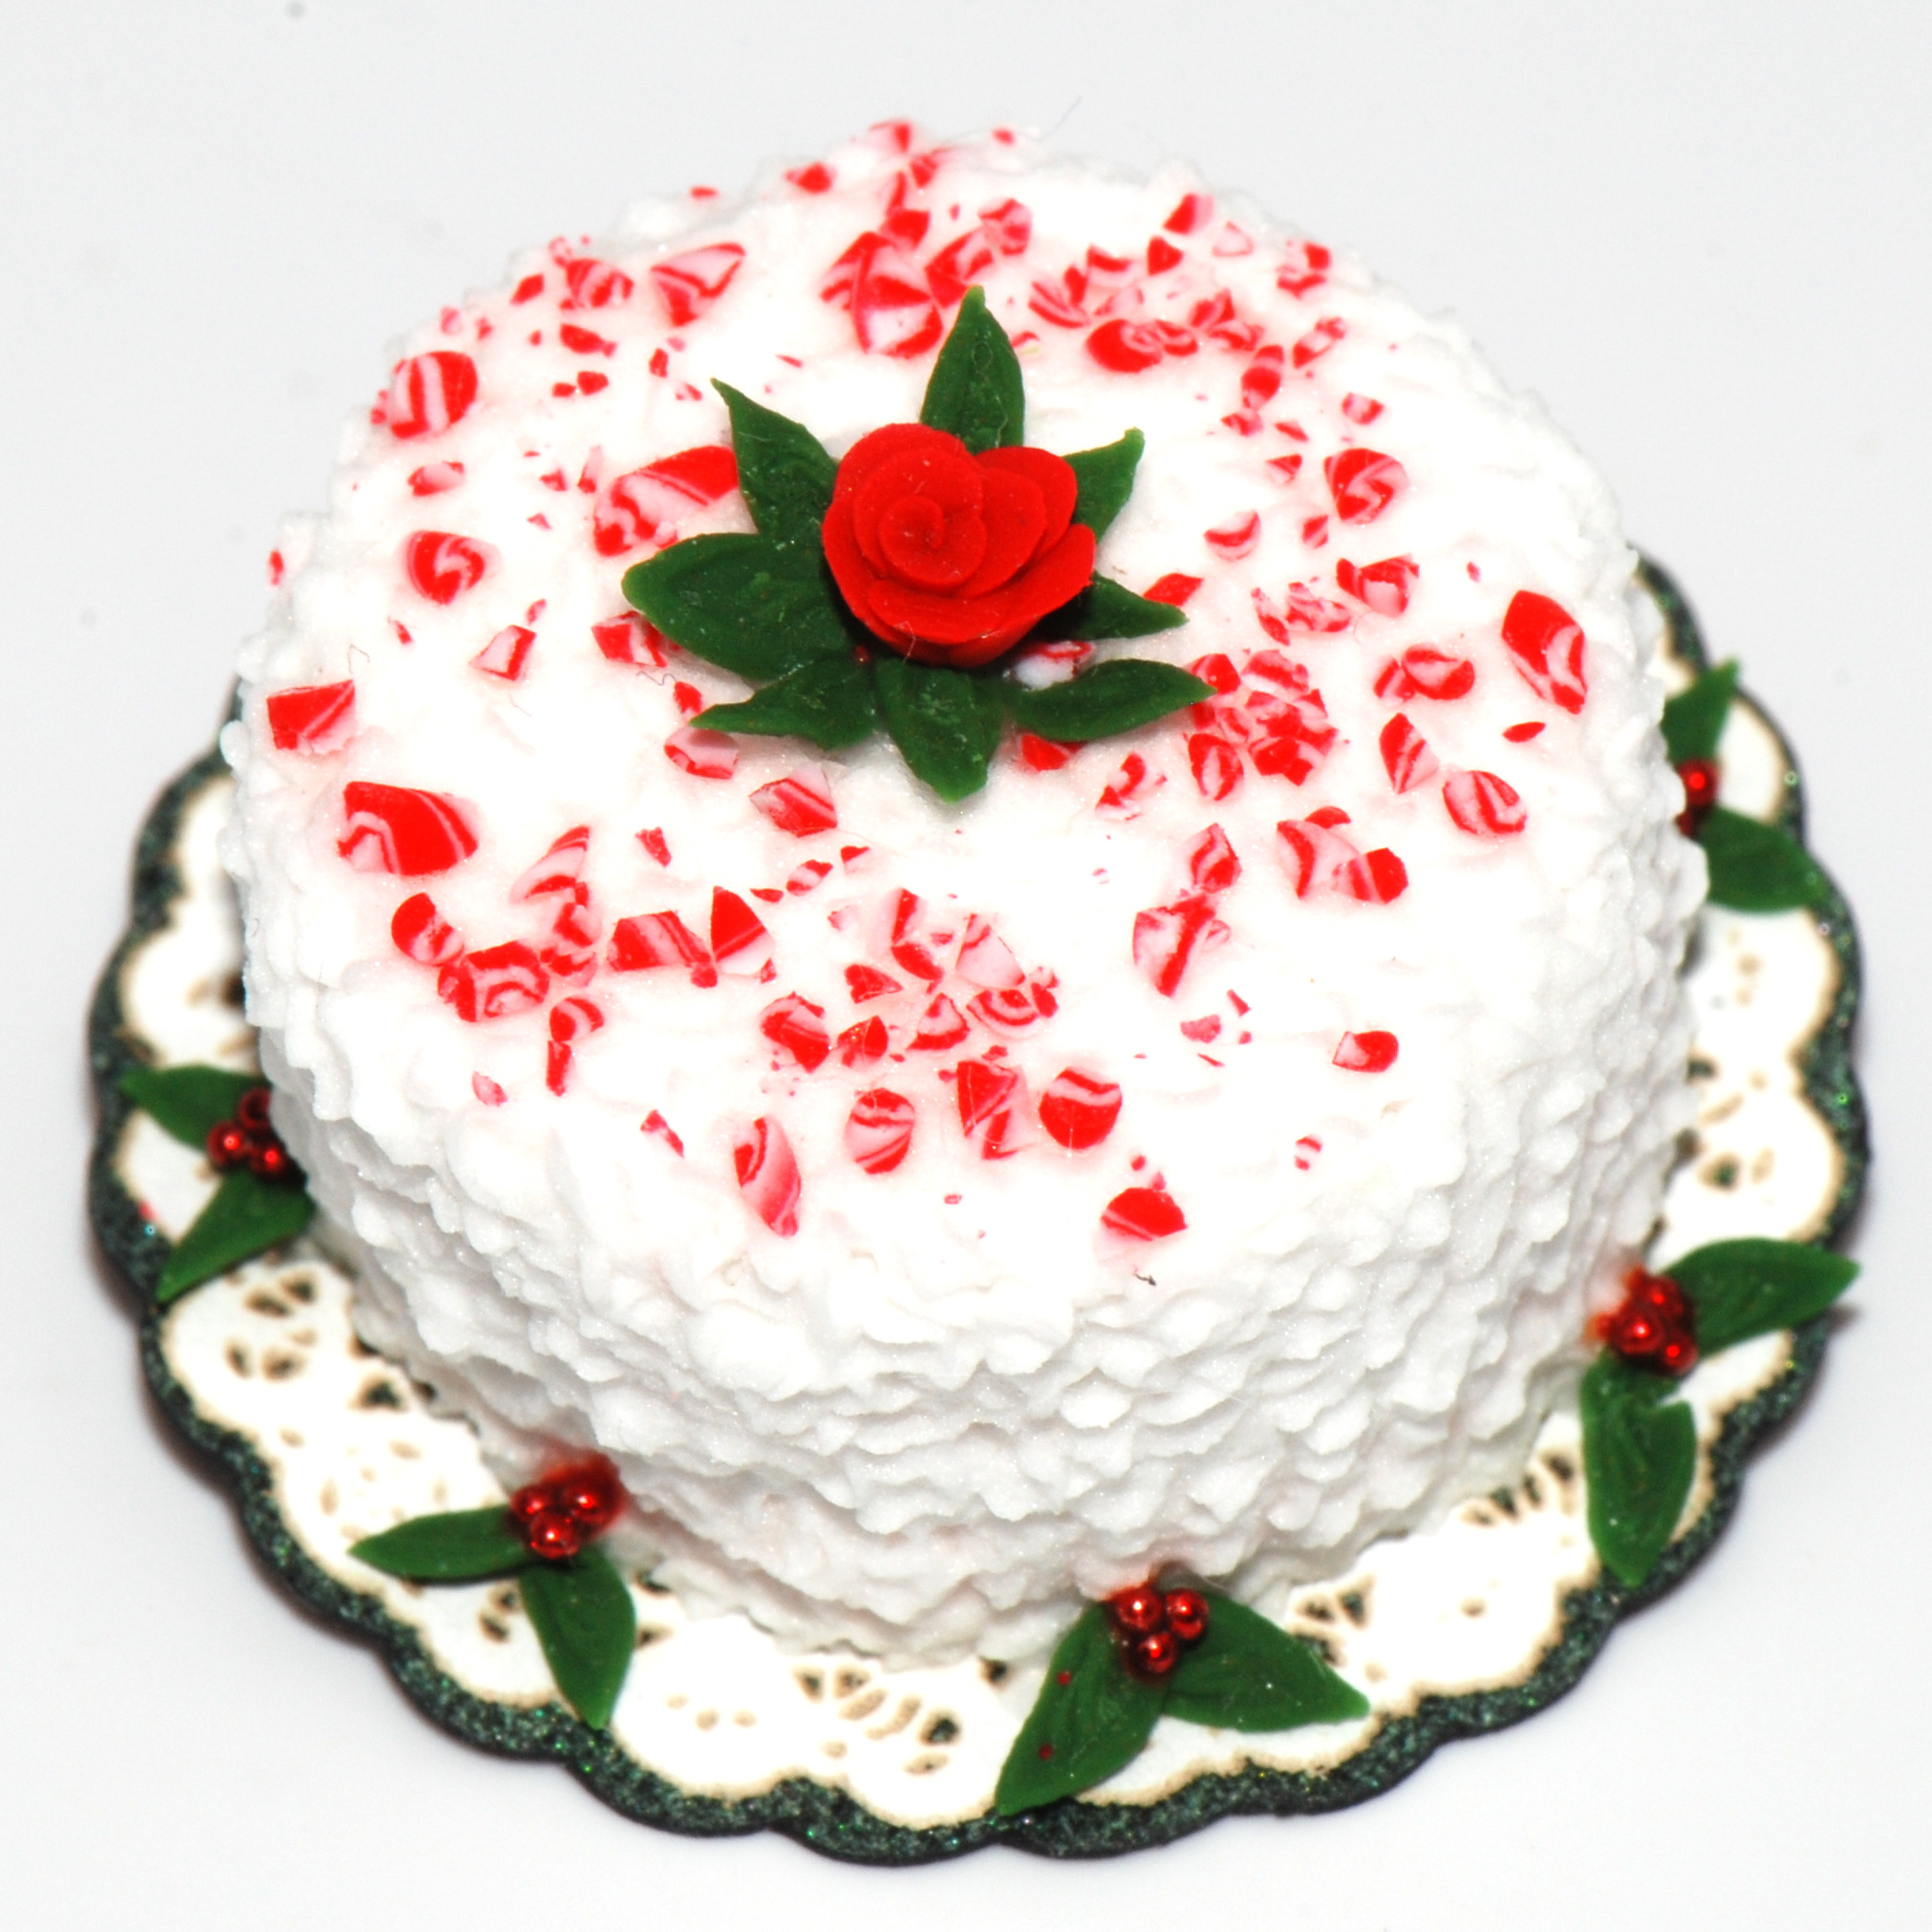 Candy Cane Sprinkles Cake | Stewart Dollhouse Creations